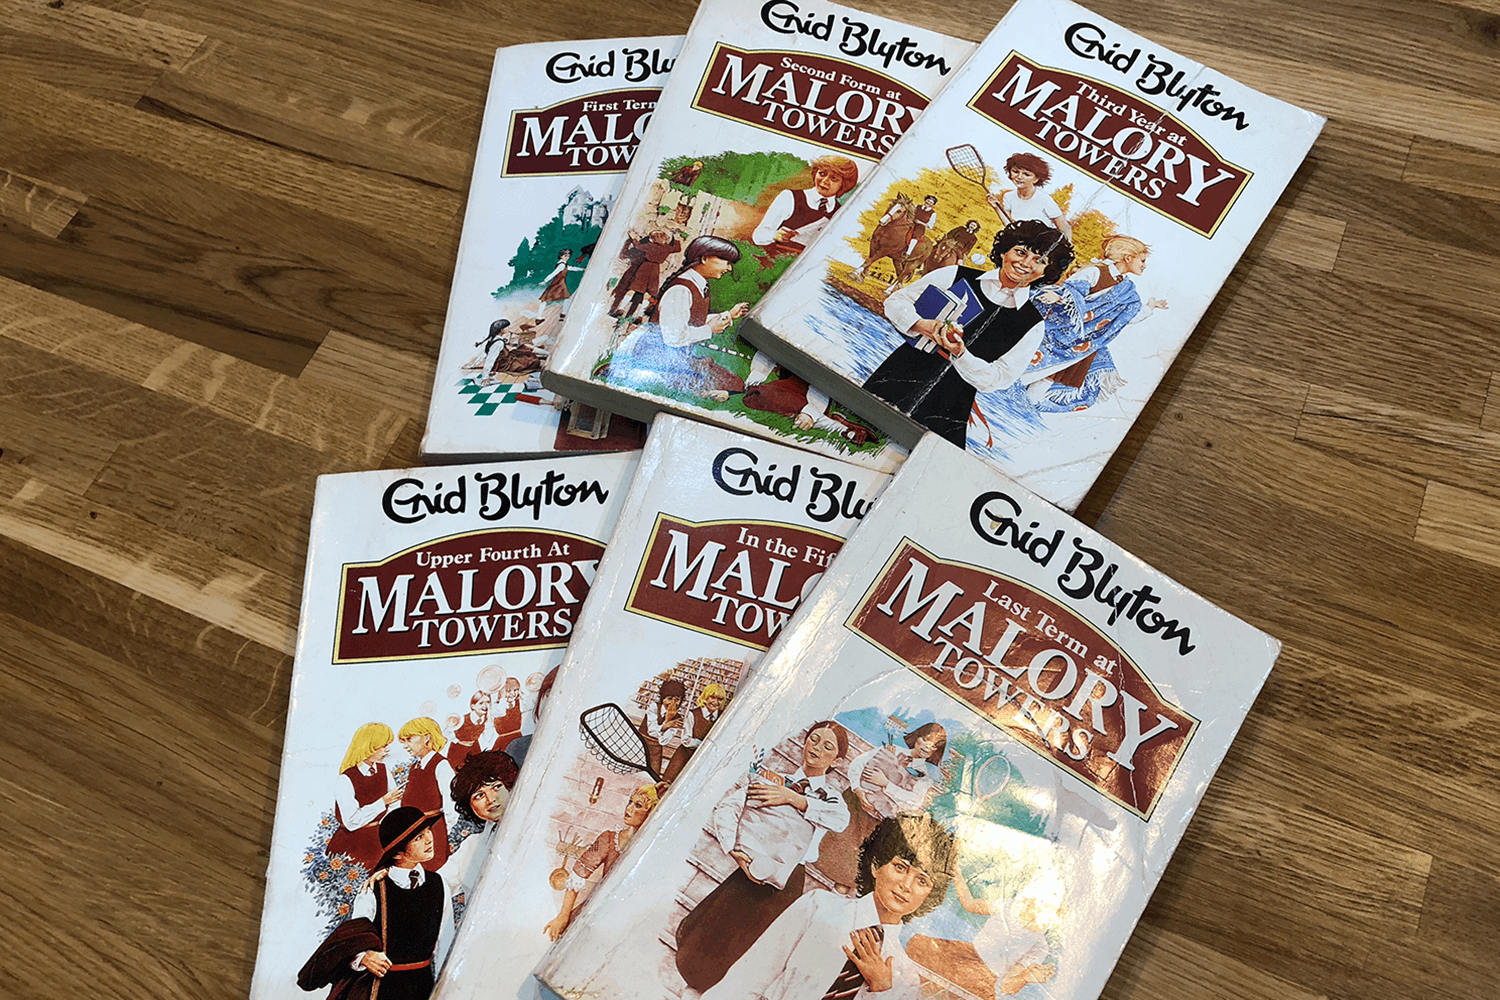 Malory Towers books - favourite books I loved to read as a child